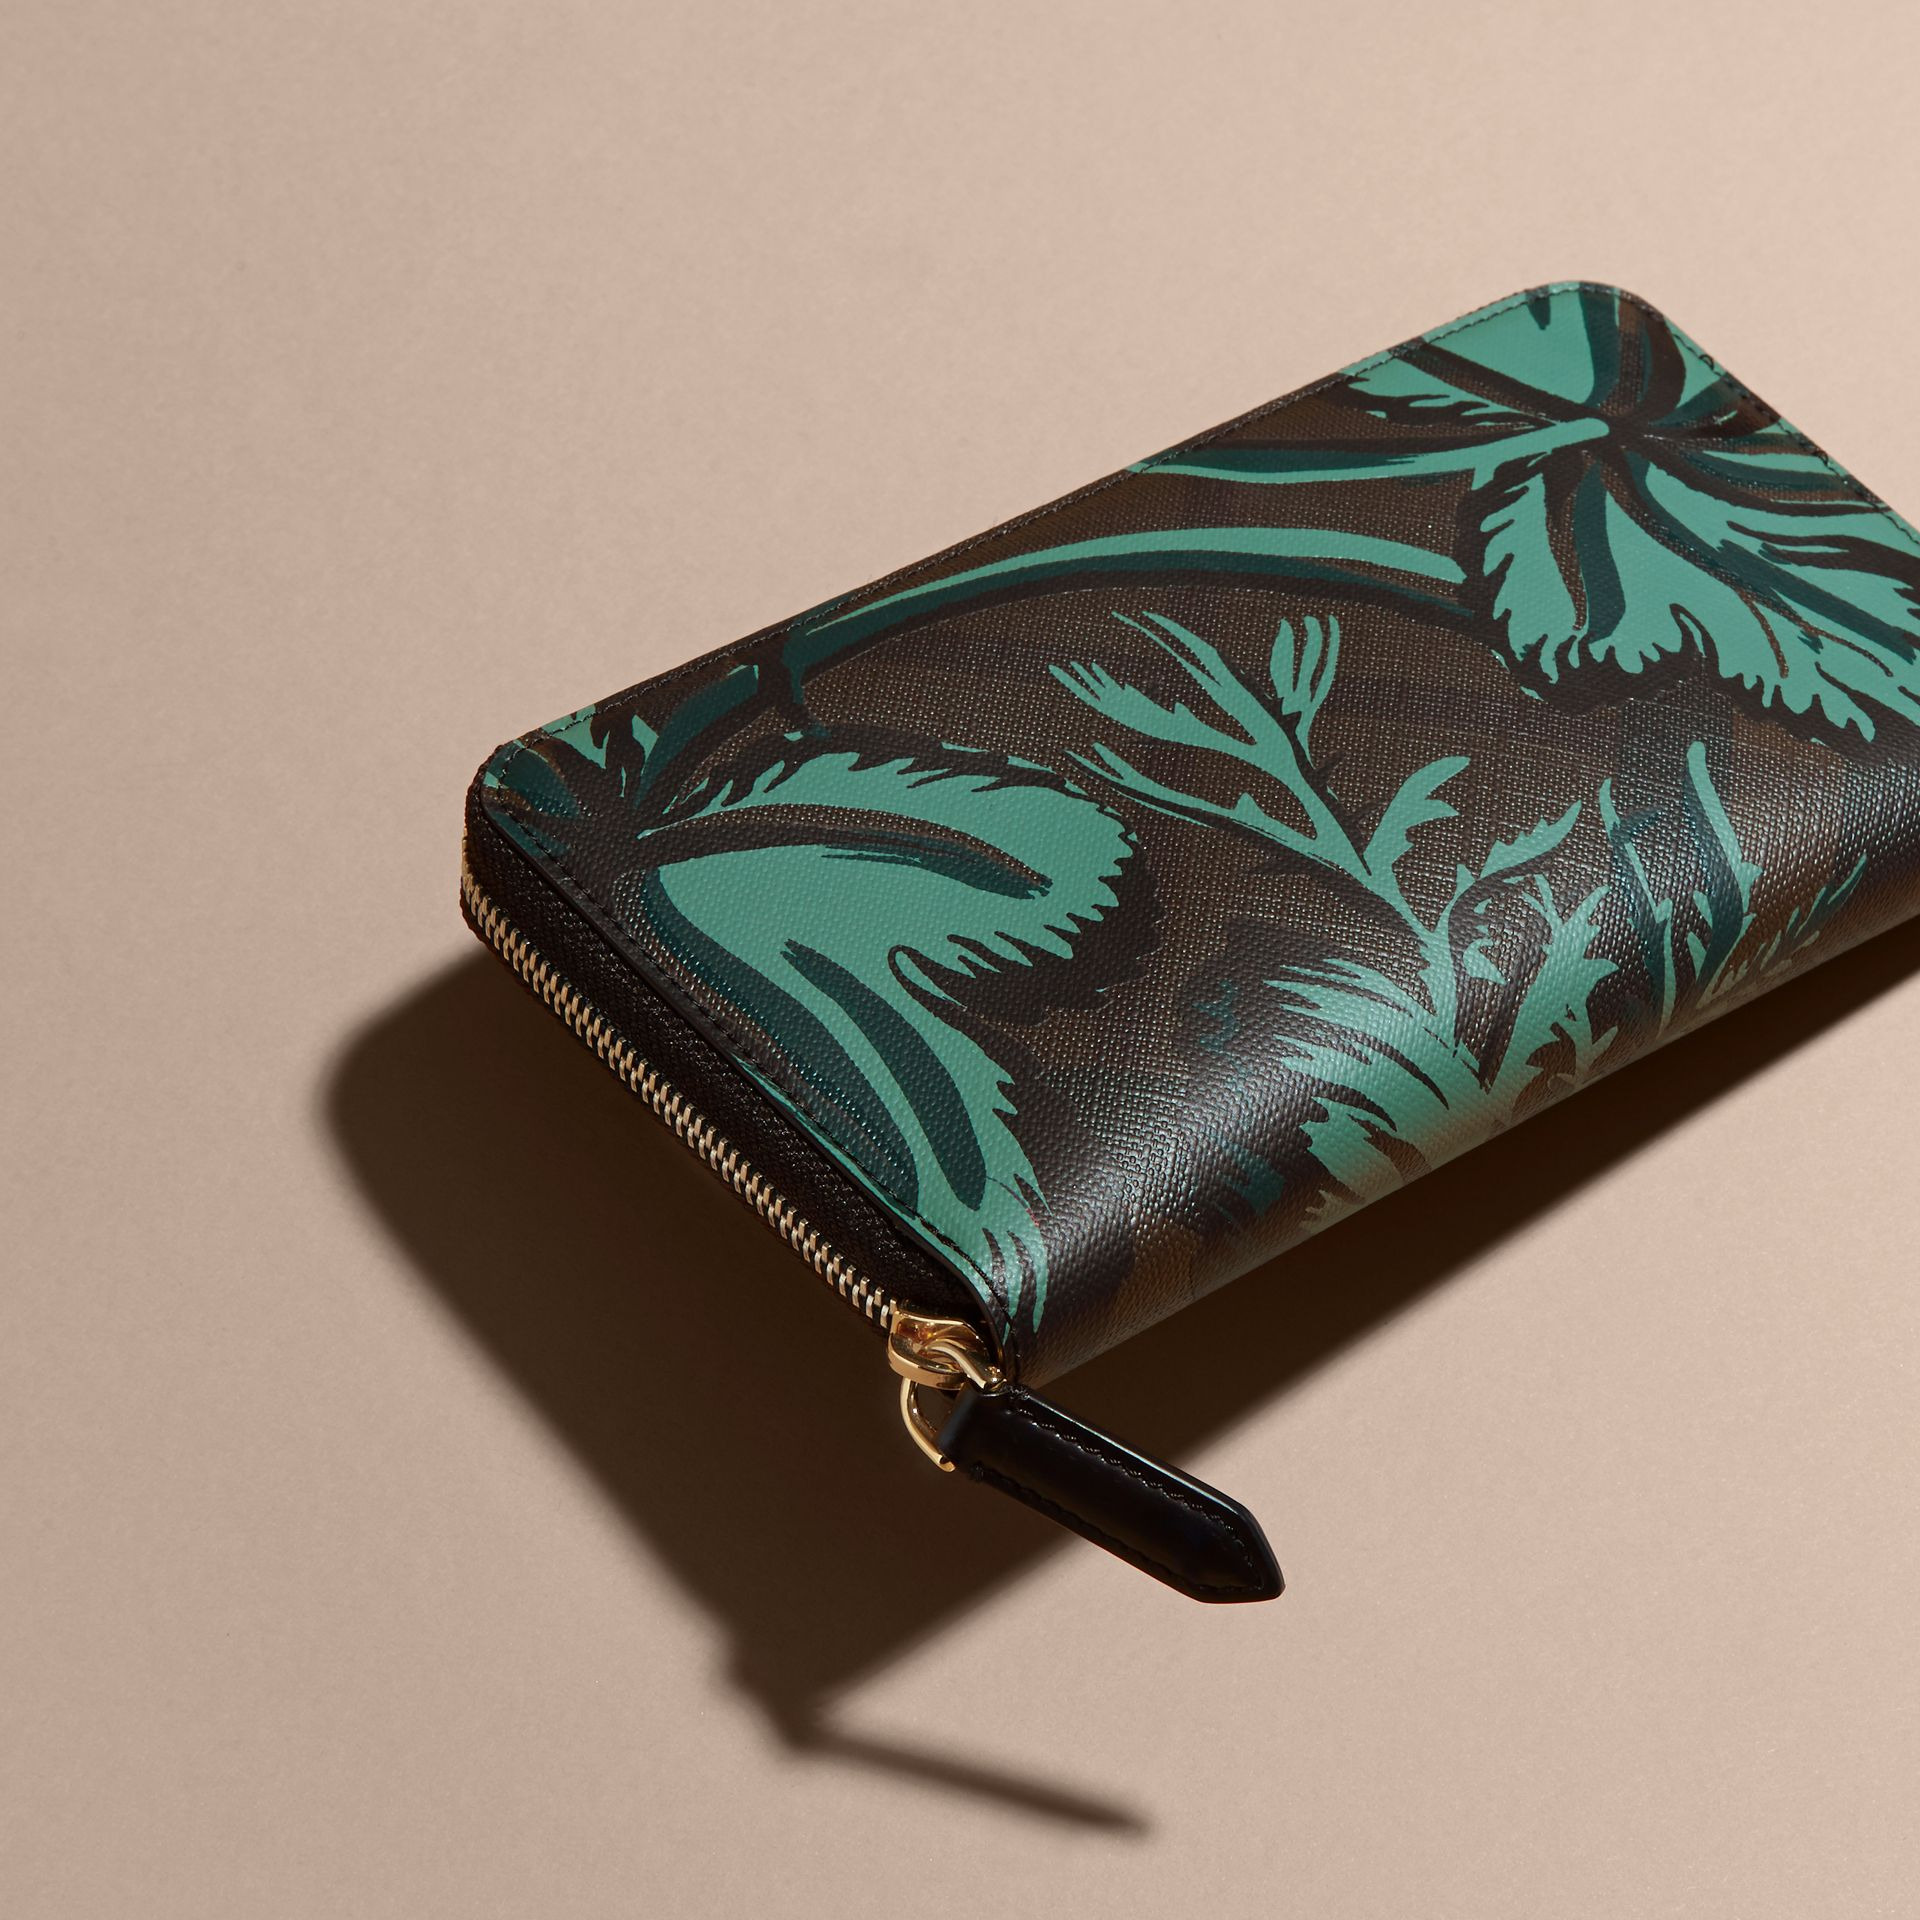 Floral Print London Check Ziparound Wallet Chocolate - gallery image 3